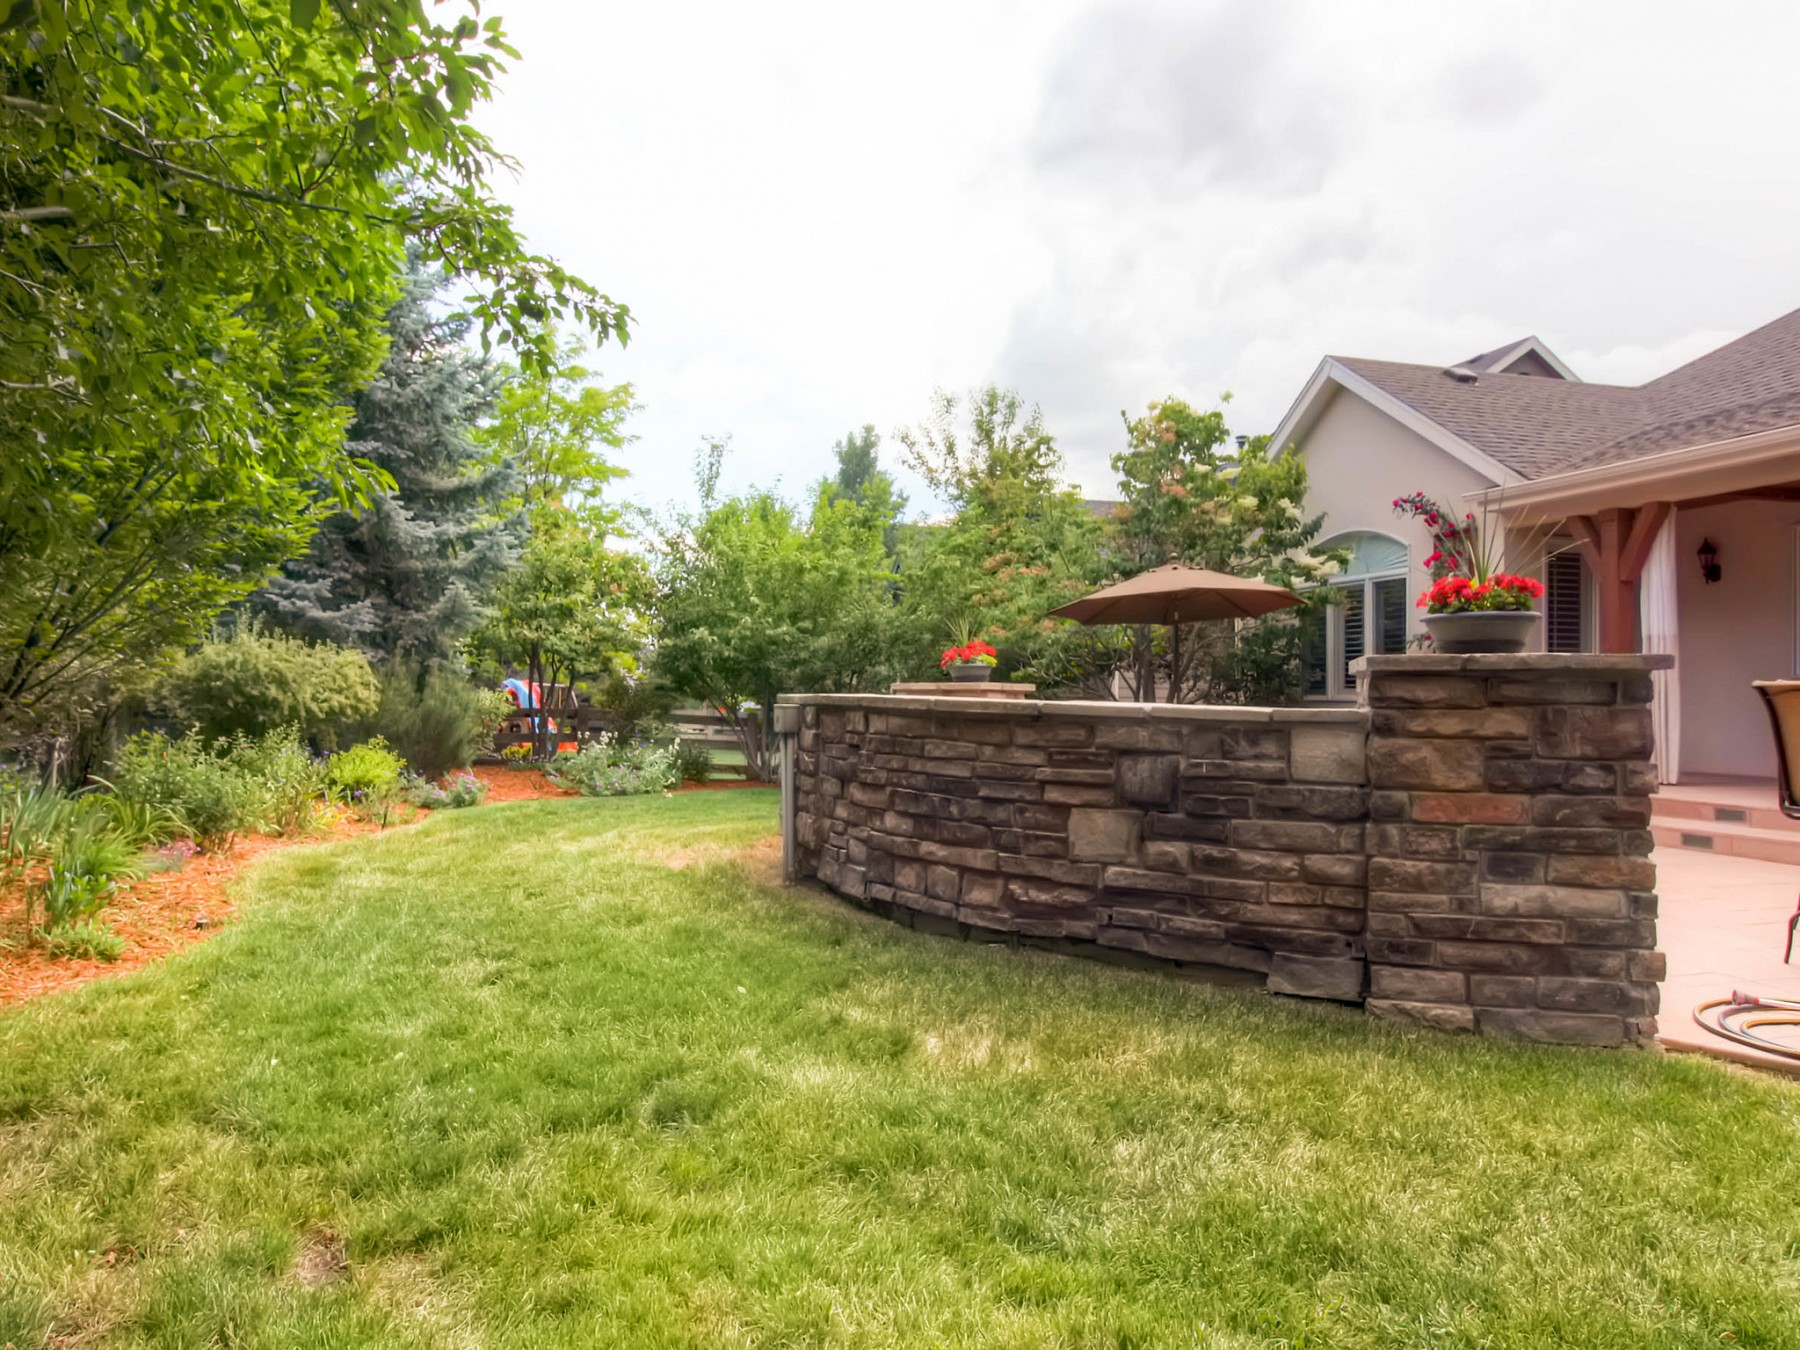 5314 South Lamar Street, Littleton, CO 80123